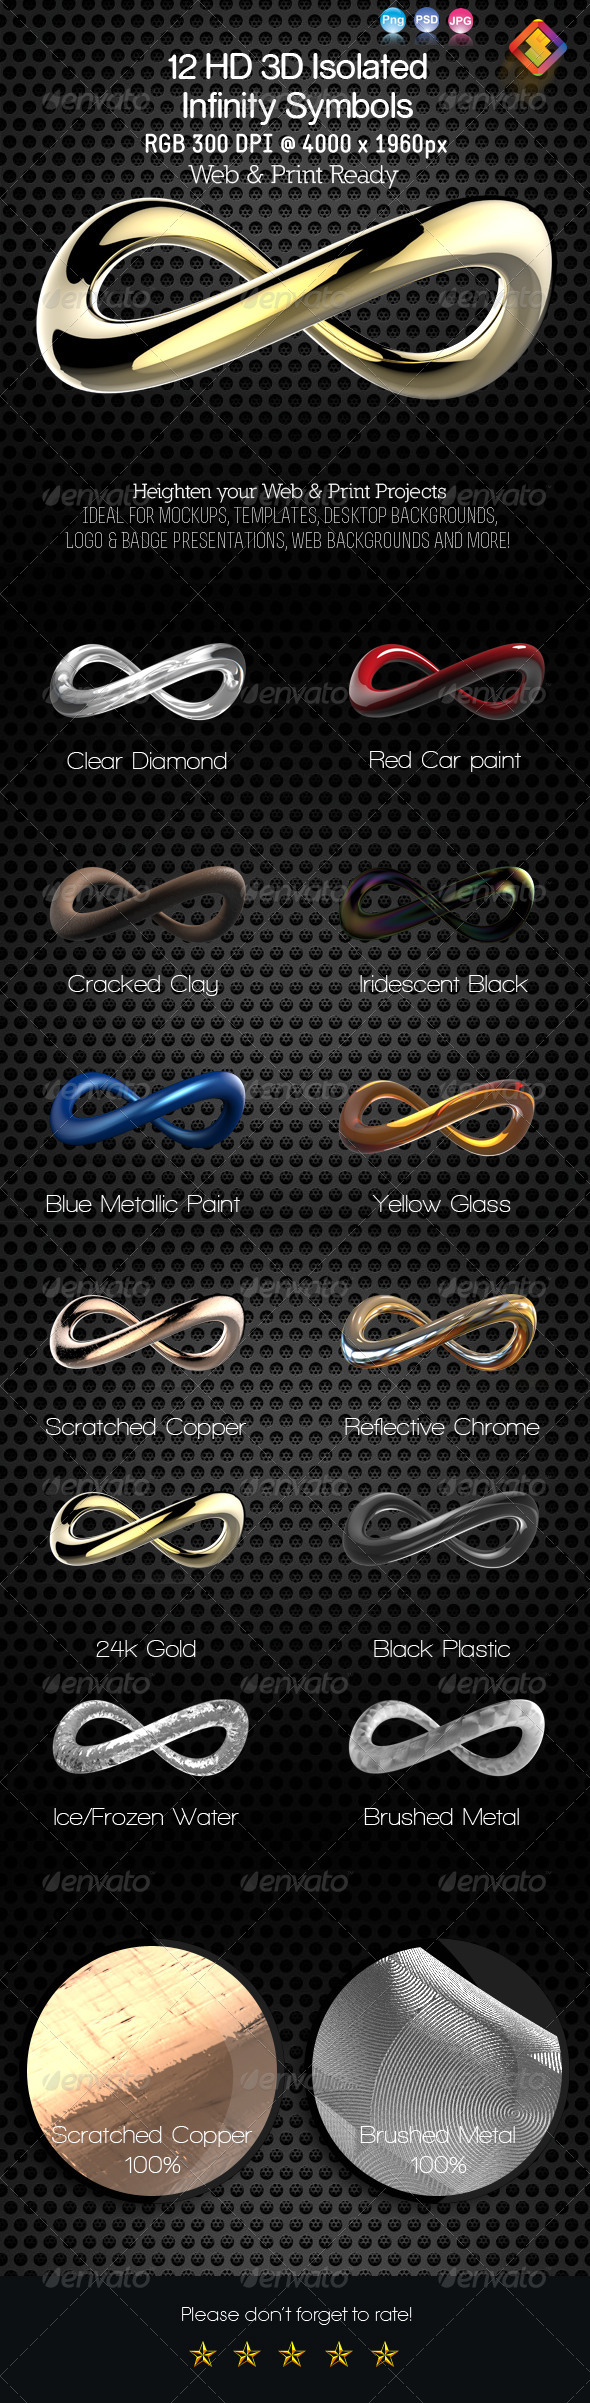 12 HD 3D Isolated Infinity Symbol - Objects 3D Renders